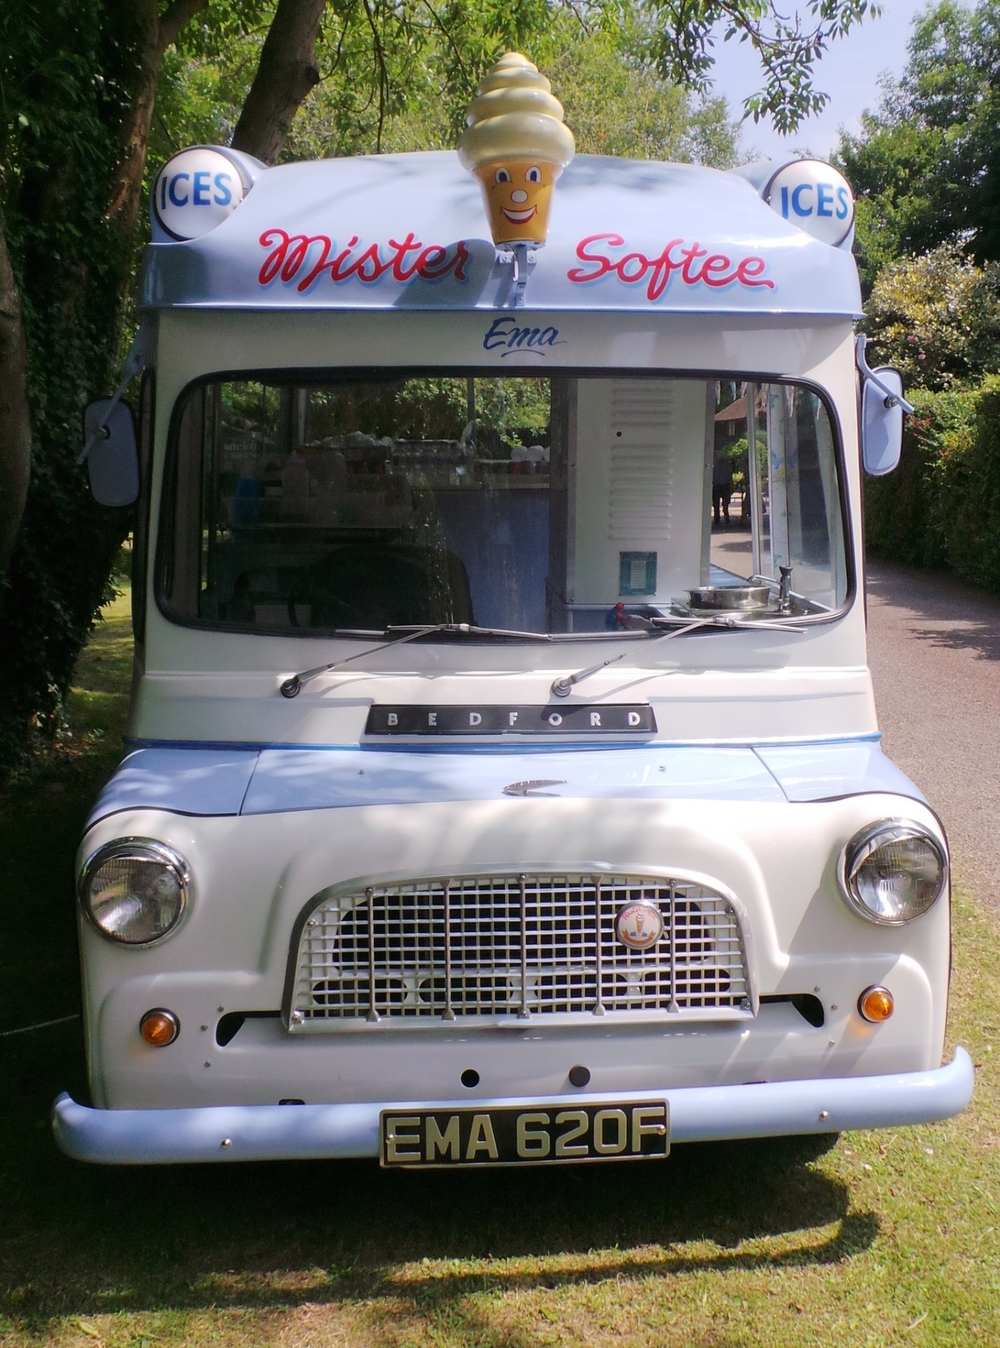 Ema - Our 1969 Bedford CA vintage ice cream van